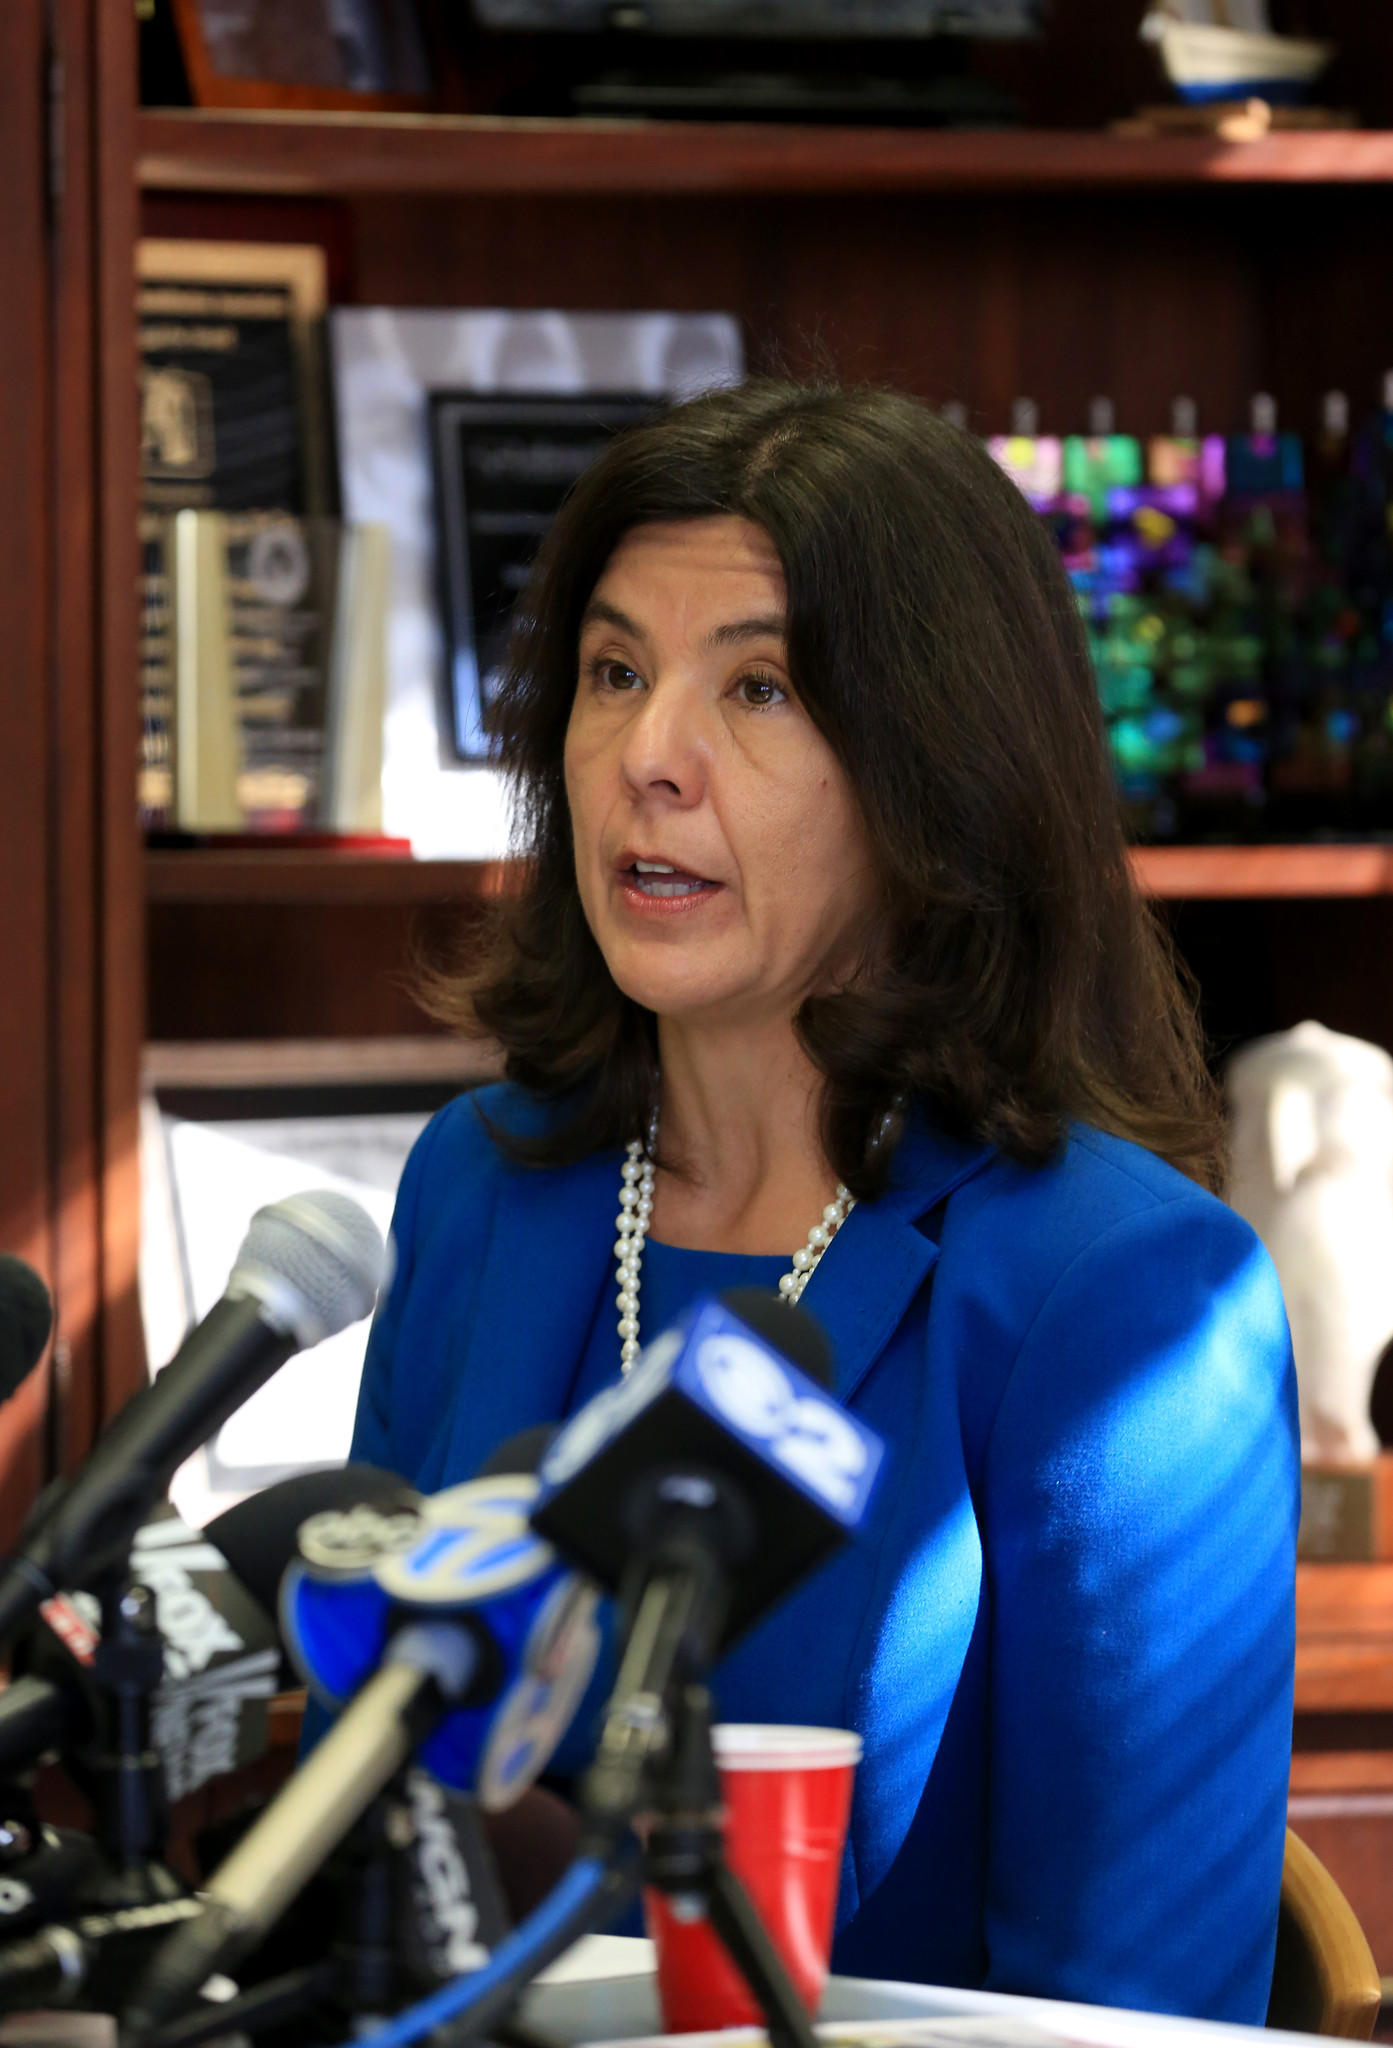 Cook County State's Attorney Anita Alvarez along with U.S. Sen. Mark Kirk (R-Ill.) outline steps Congress can take to support local law enforcement in the fight against sex trafficking during a press conference in Chicago.